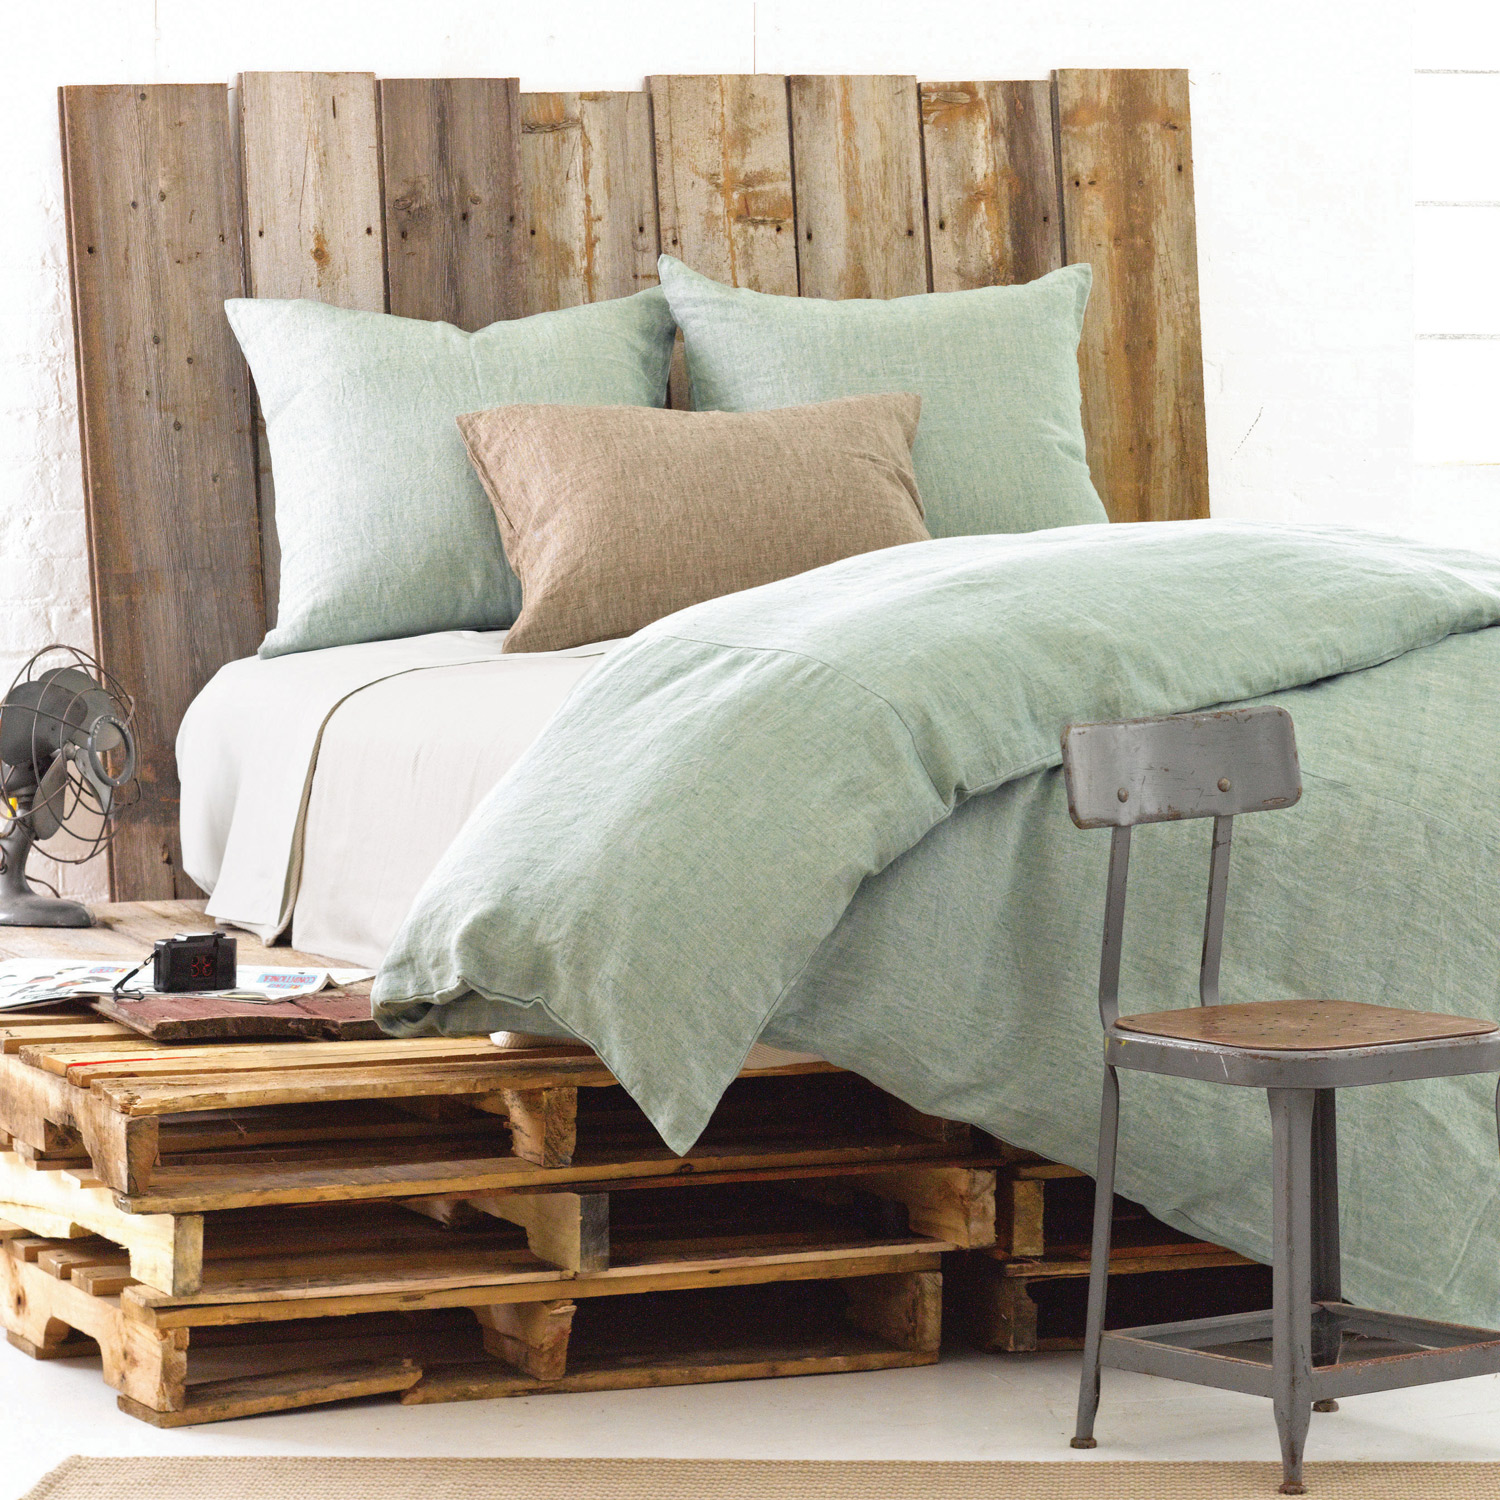 Lovely Pine Cone Hill Bedding For Interesting Bed Ideas: Chic Pine Cone Hill Chambray Linen Ocean Duvet Cover In Green For Bed Ideas